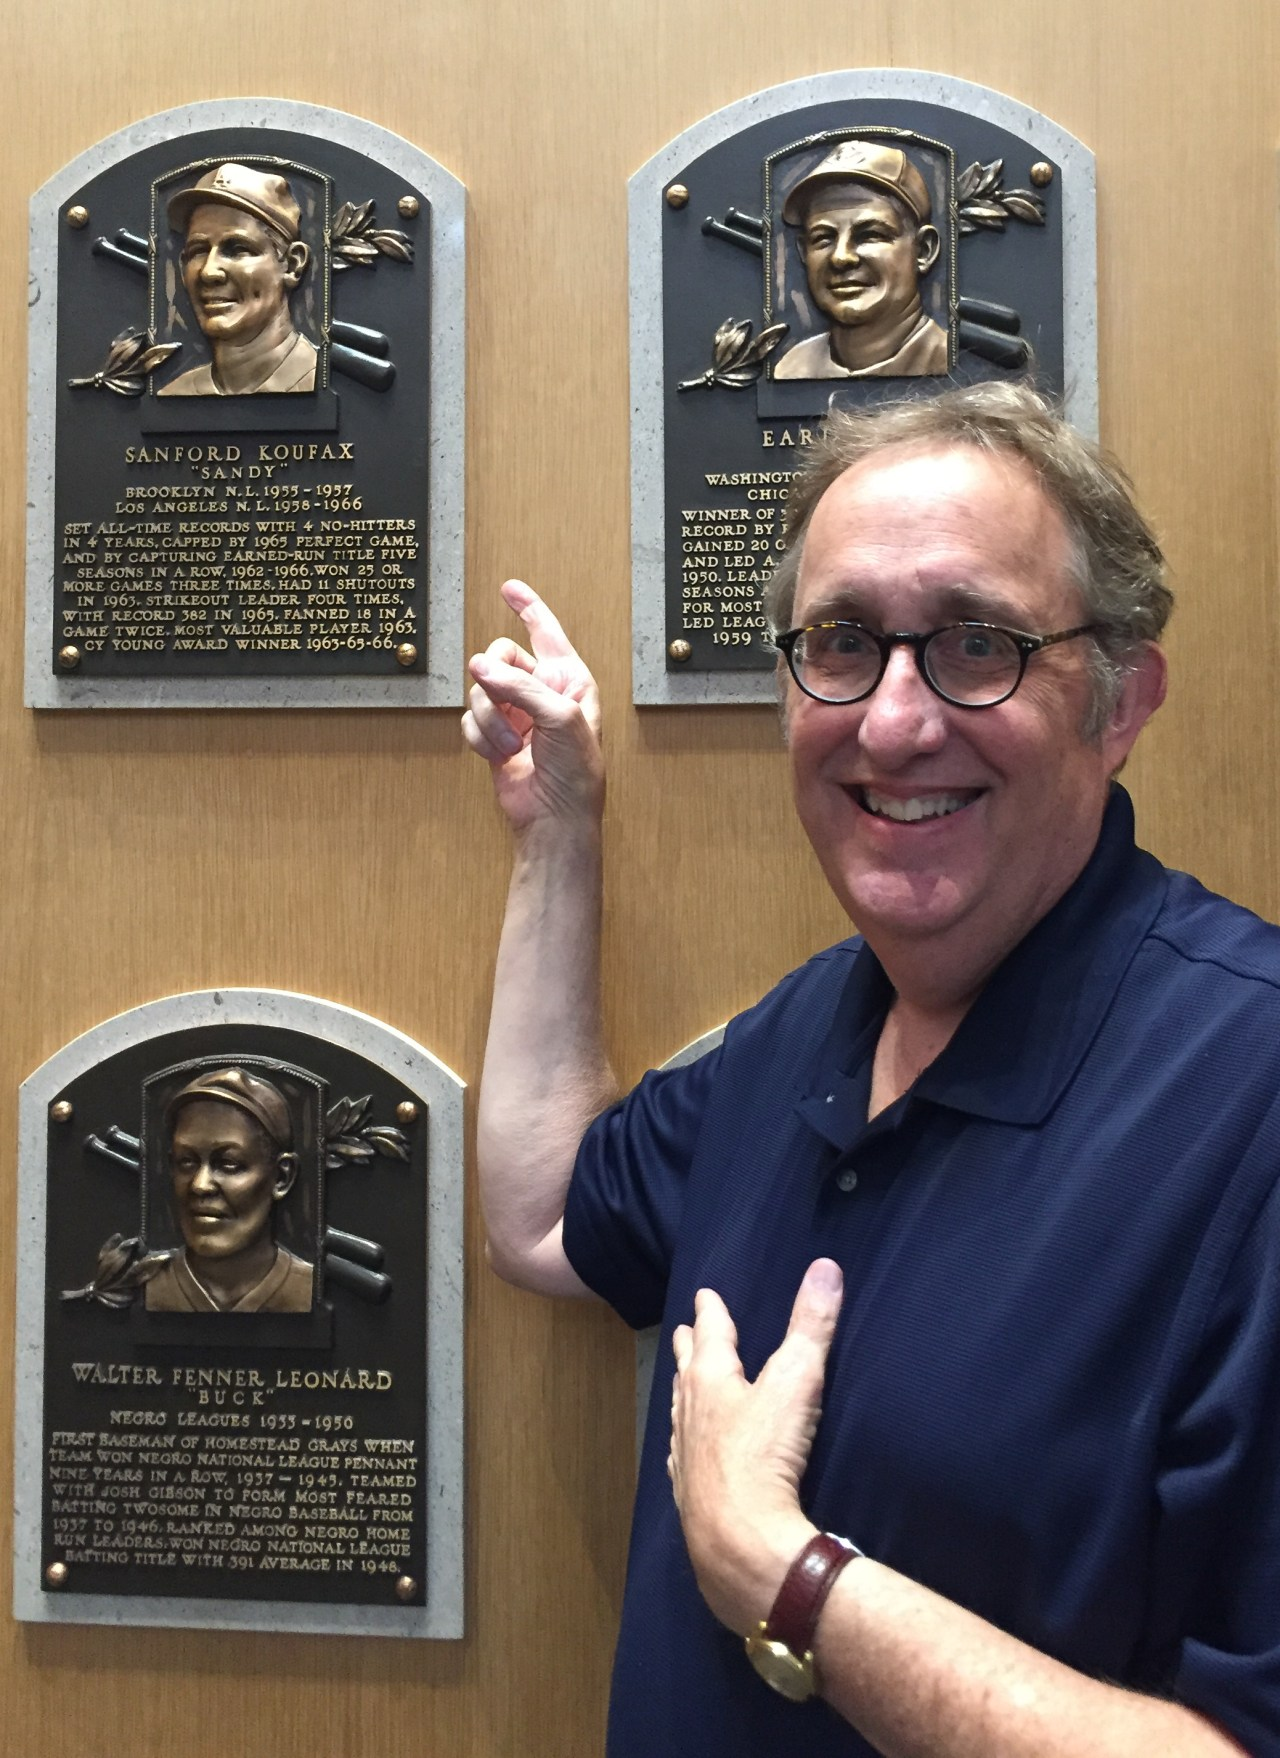 Me at my childhood hero's plaque at the Baseball Hall of Fame